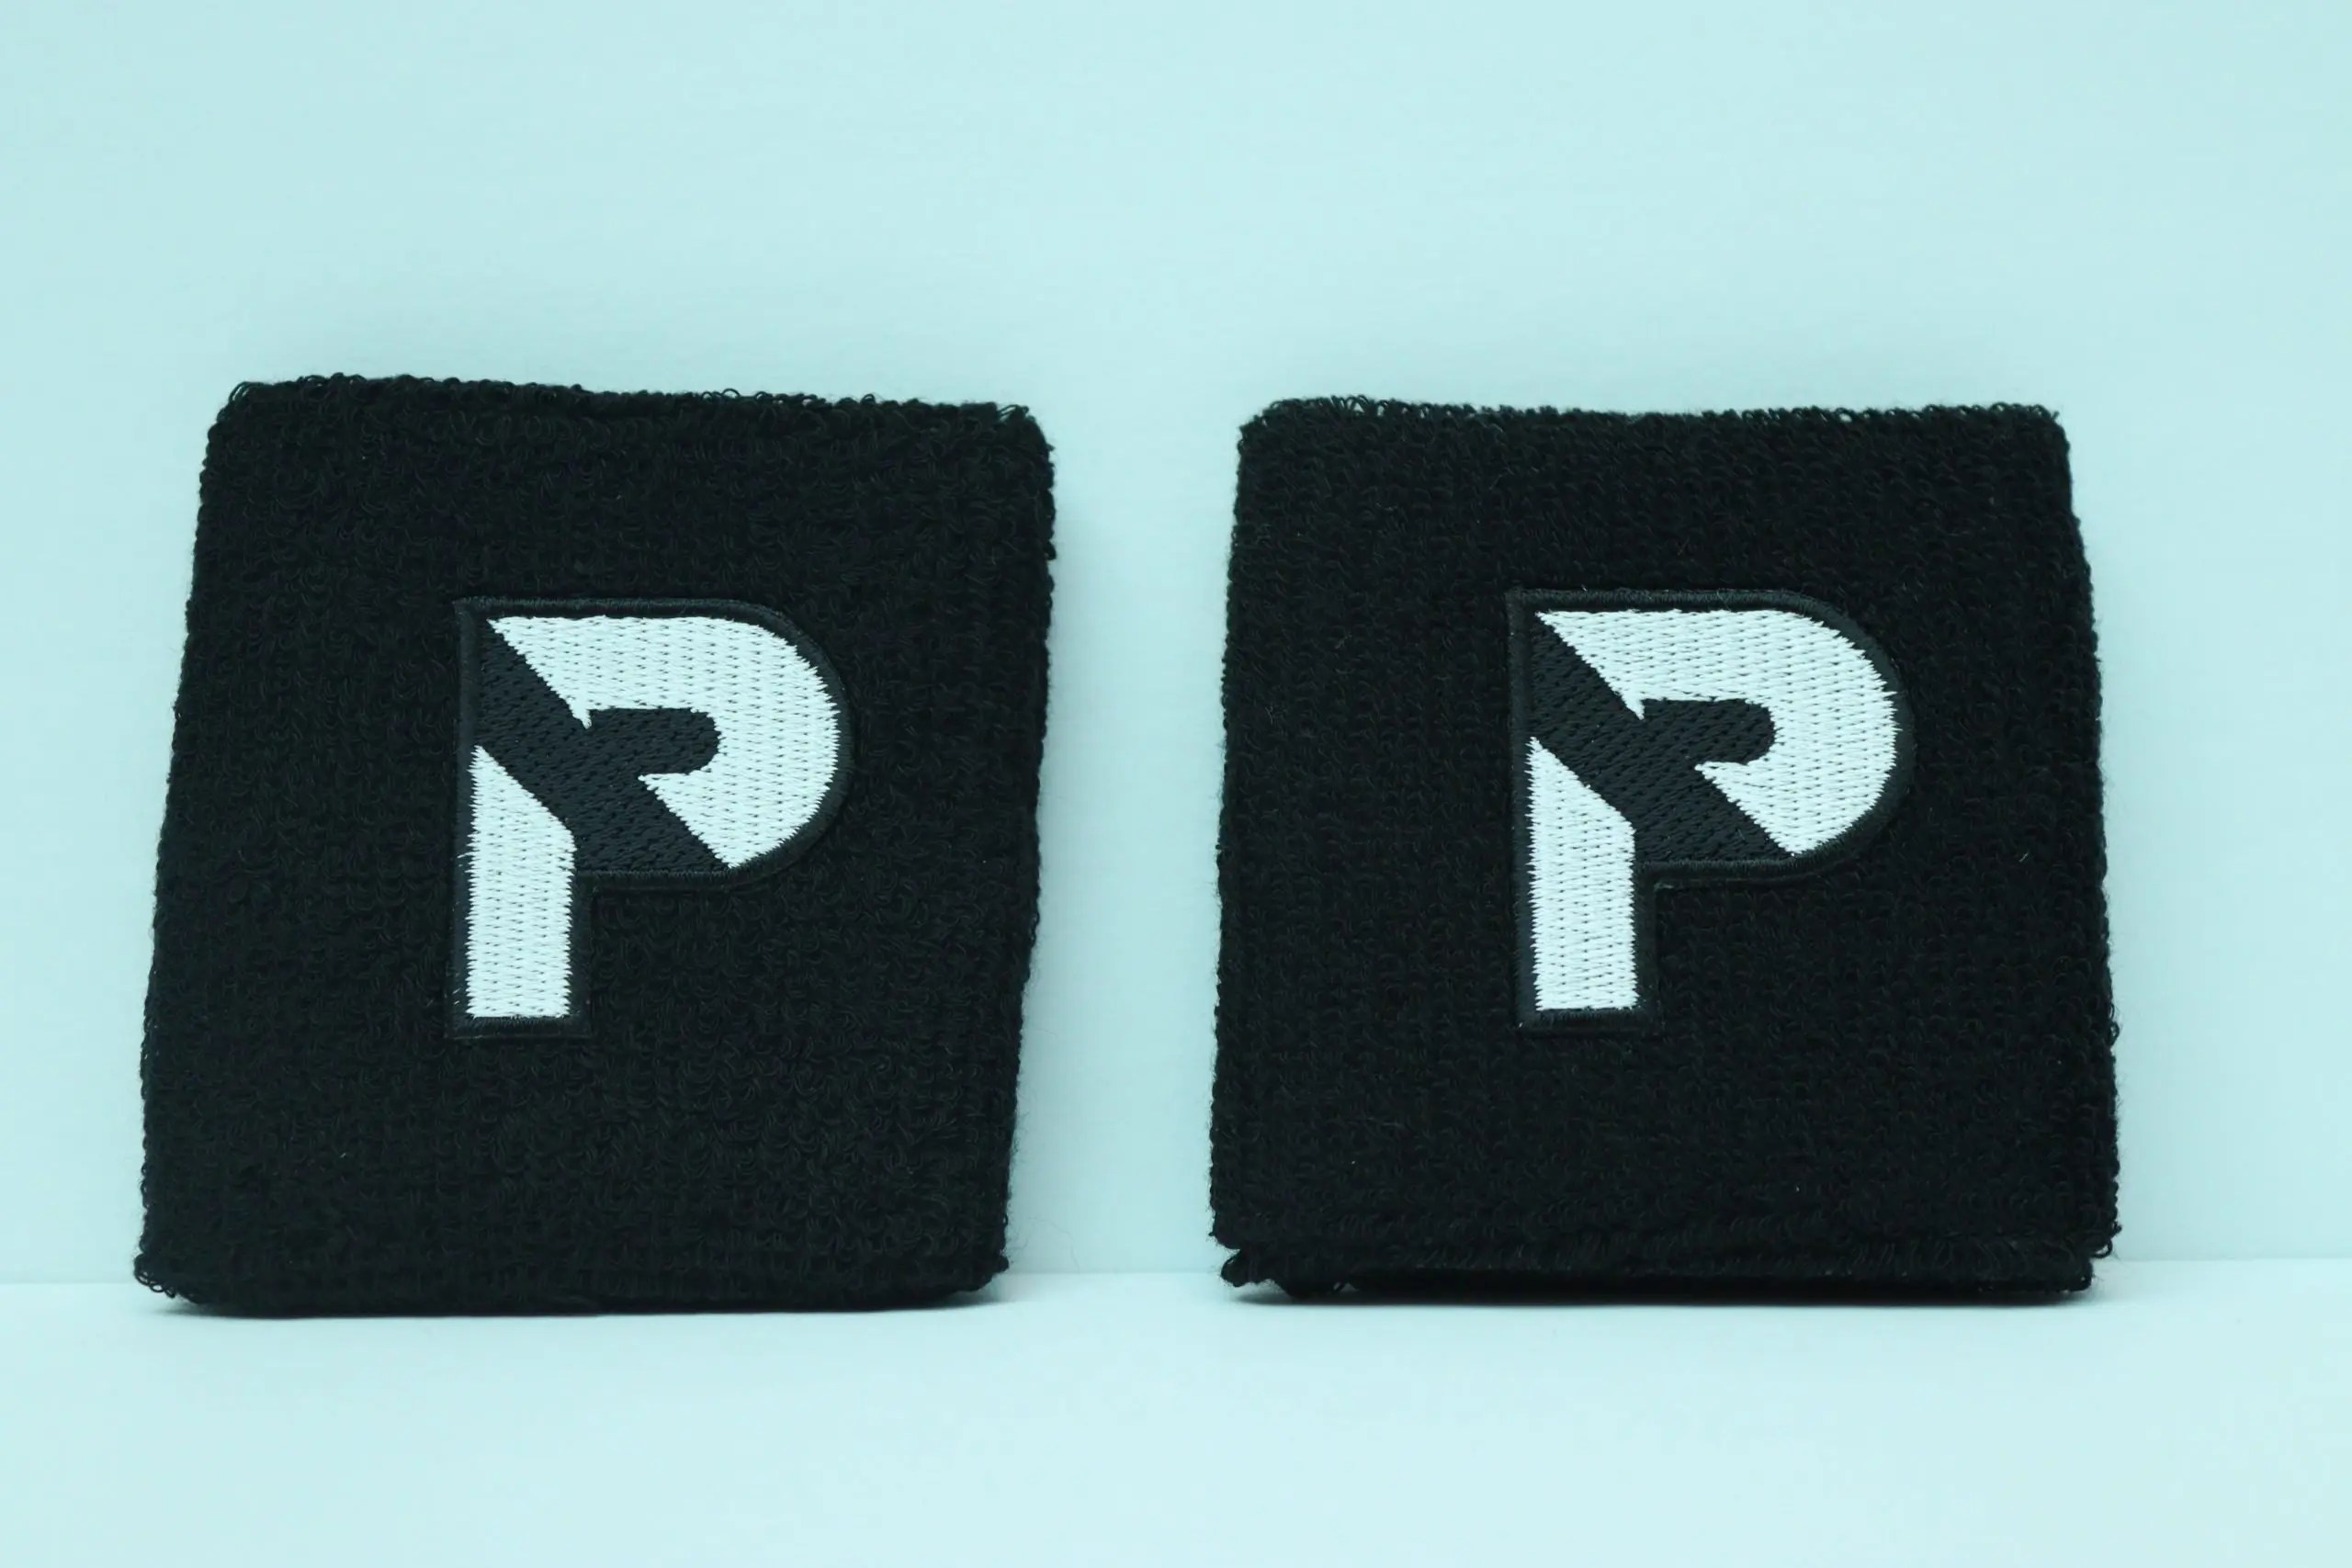 Black Performance Wristbands (2-Pack)